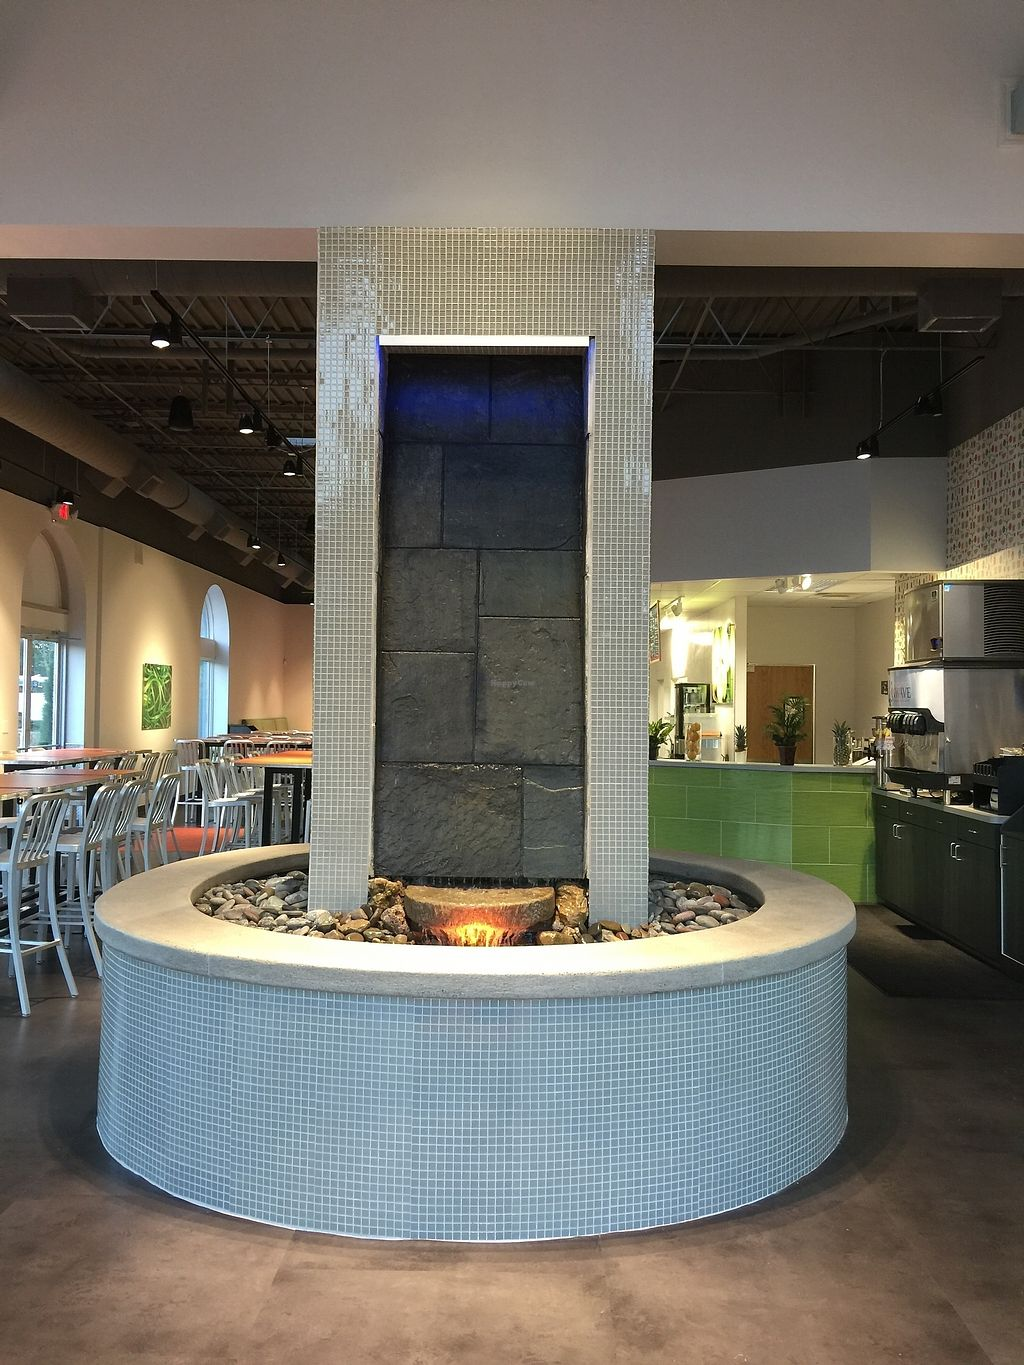 """Photo of InWave Restaurant & Juice Bar  by <a href=""""/members/profile/PeaceToAllBeings"""">PeaceToAllBeings</a> <br/>A water wall provides the sound of falling water <br/> October 15, 2017  - <a href='/contact/abuse/image/99857/315554'>Report</a>"""